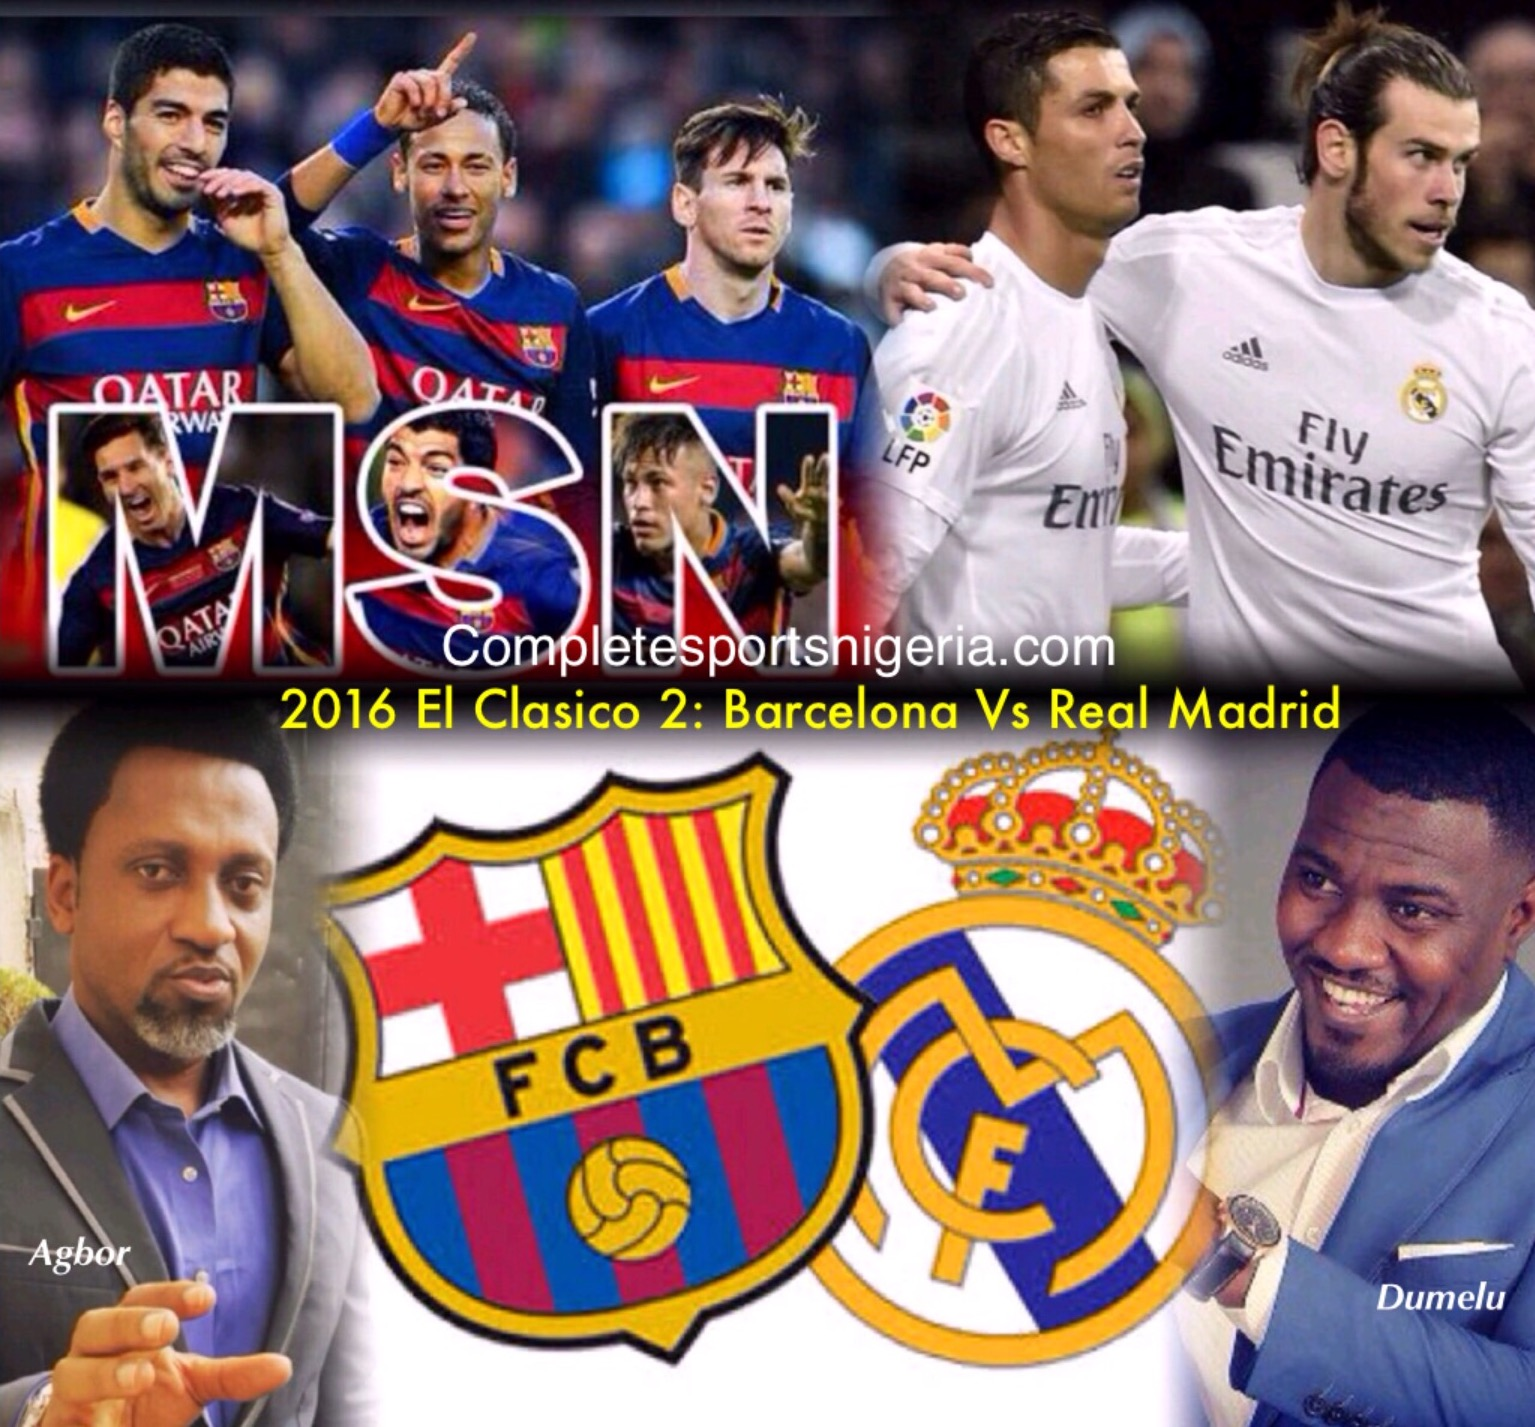 Celebs' El Clasico! Dumelo Tips CR7, Bale To Sink Barca; Agbor Sure MSN Will Bury Madrid